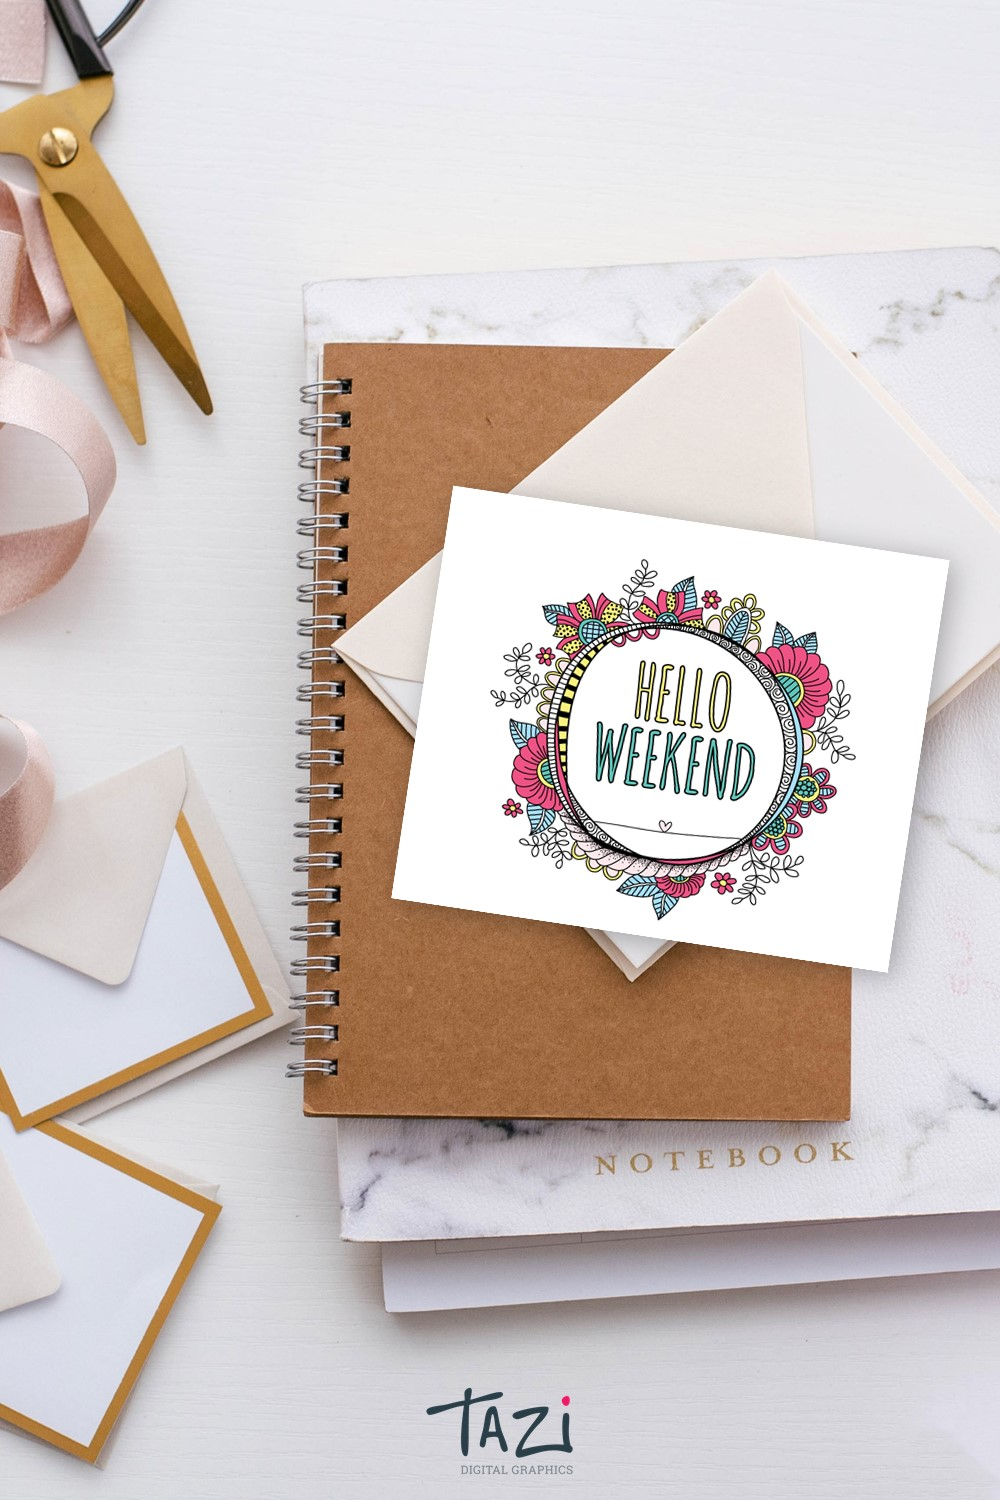 Hello Weekend digital graphic by Tazi